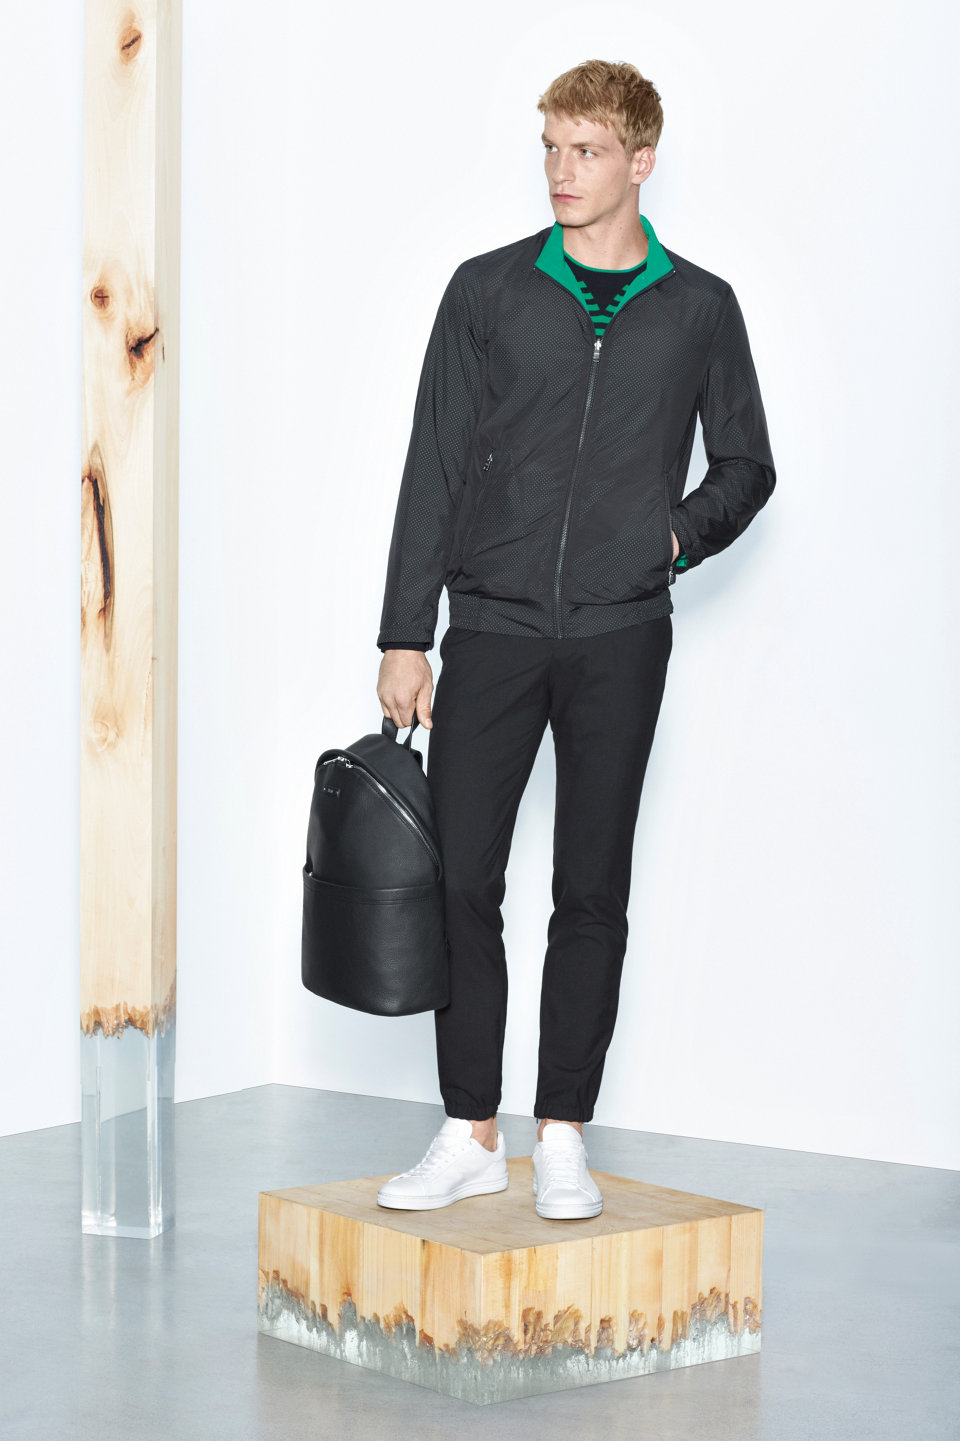 Black outerwear, black trousers and white sneakers by BOSS